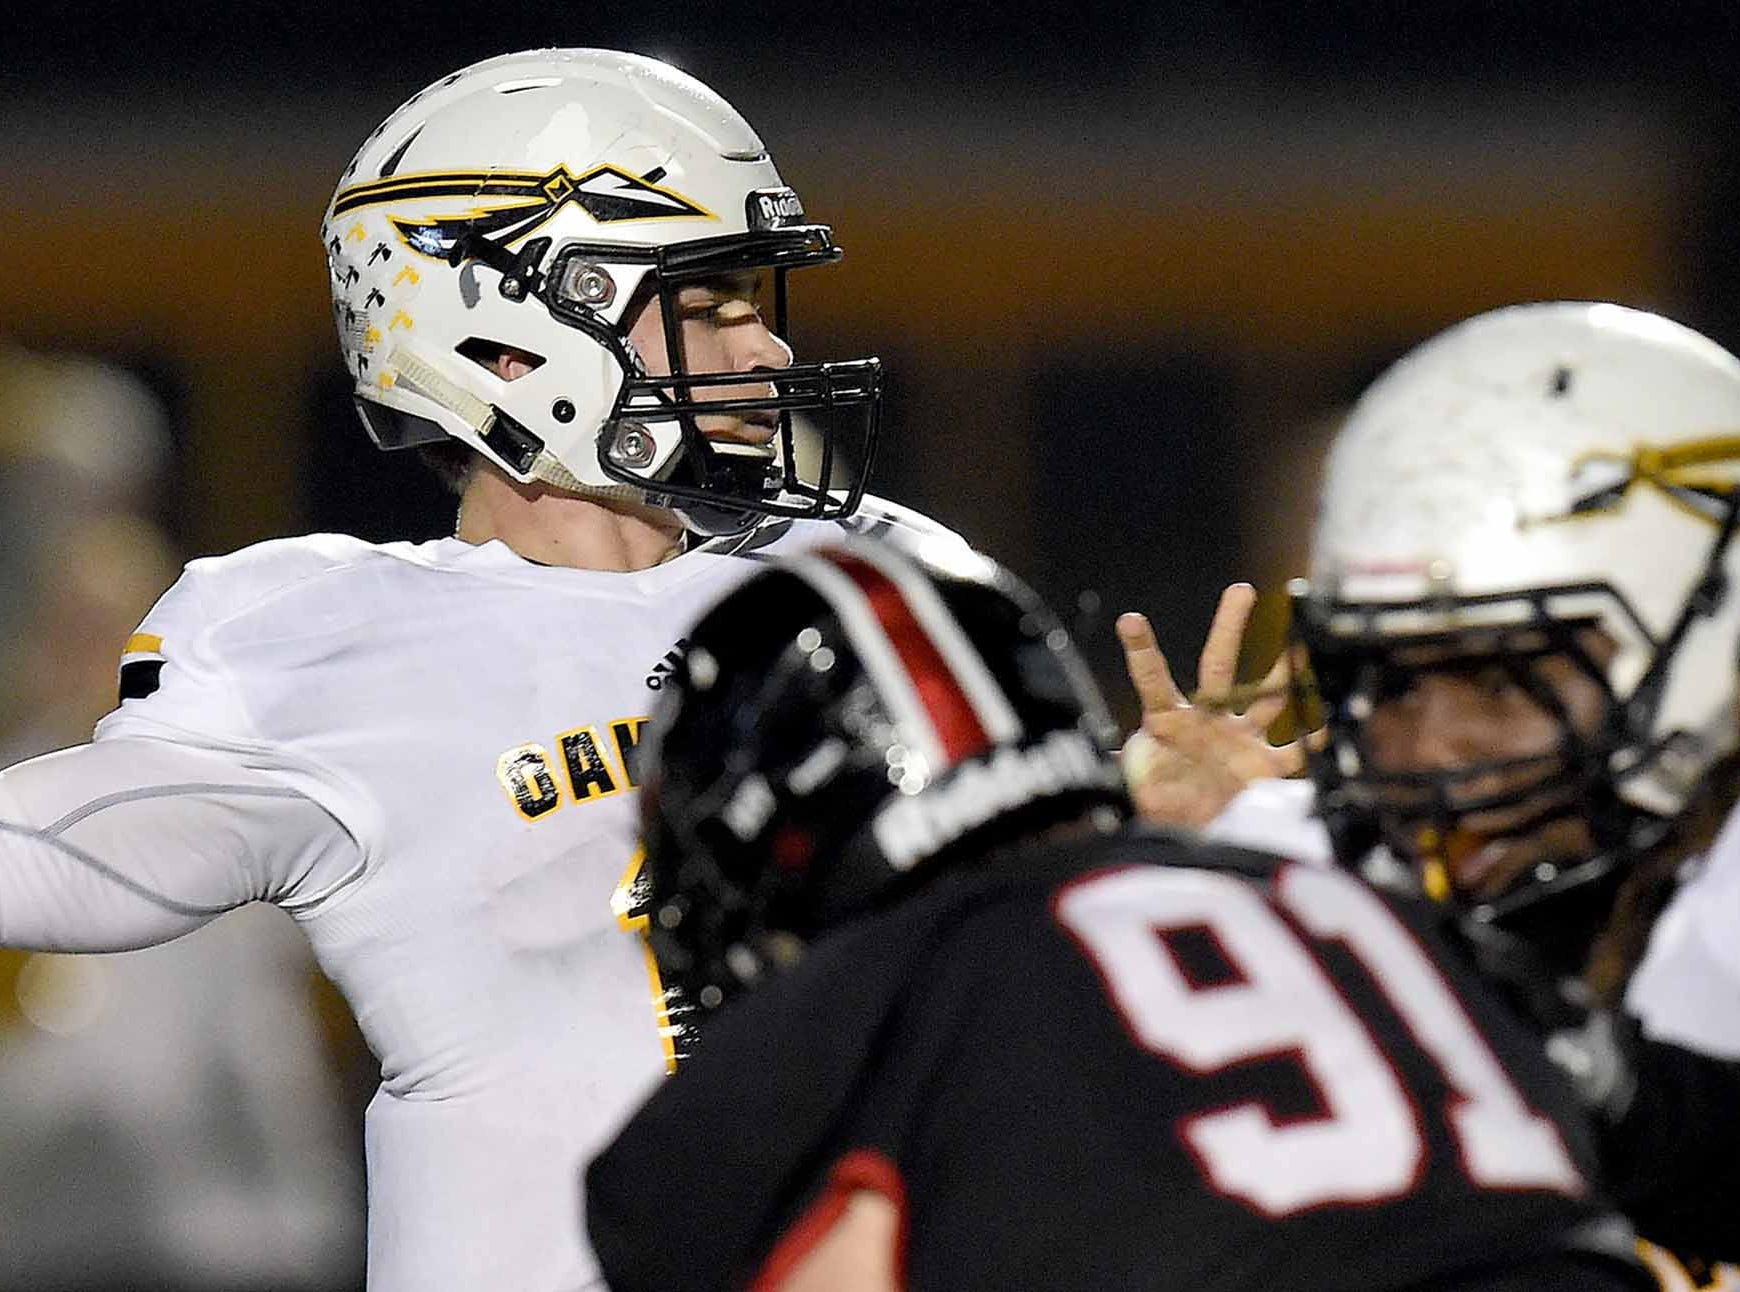 Oak Grove quarterback John Rhys Plumlee (left) throws over the Brandon pass rush in the MHSAA Class 6A South State Championship on Friday, November 23, 2018, at Brandon High School in Brandon, Miss.